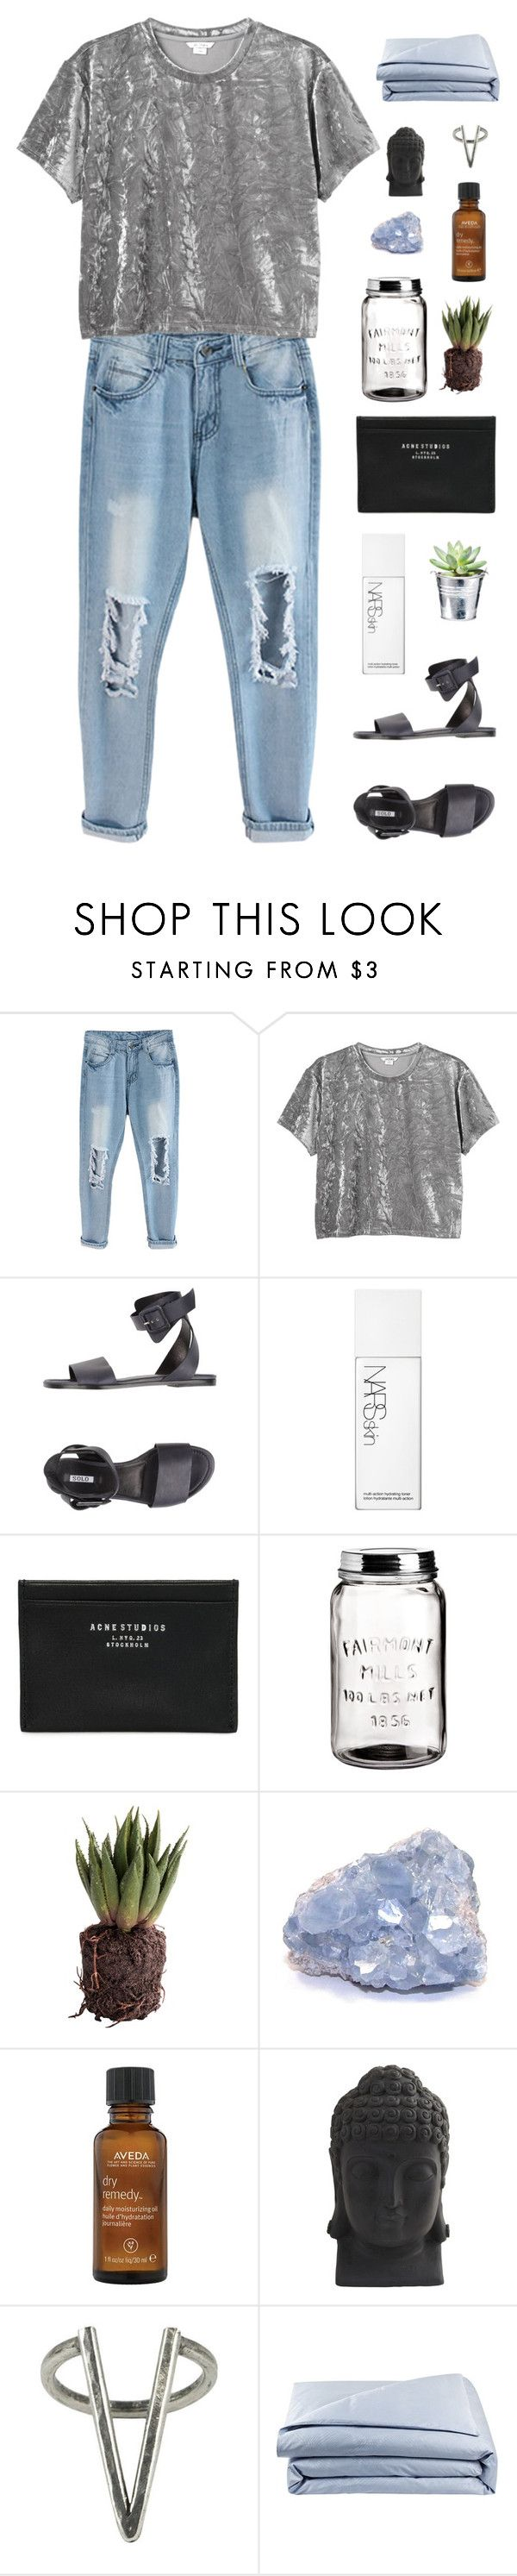 """you used to call me"" by chanelflowurs ❤ liked on Polyvore featuring Monki, Solo, CO, NARS Cosmetics, Acne Studios, H&M, Aveda, Nearly Natural, The 2 Bandits and Frette"